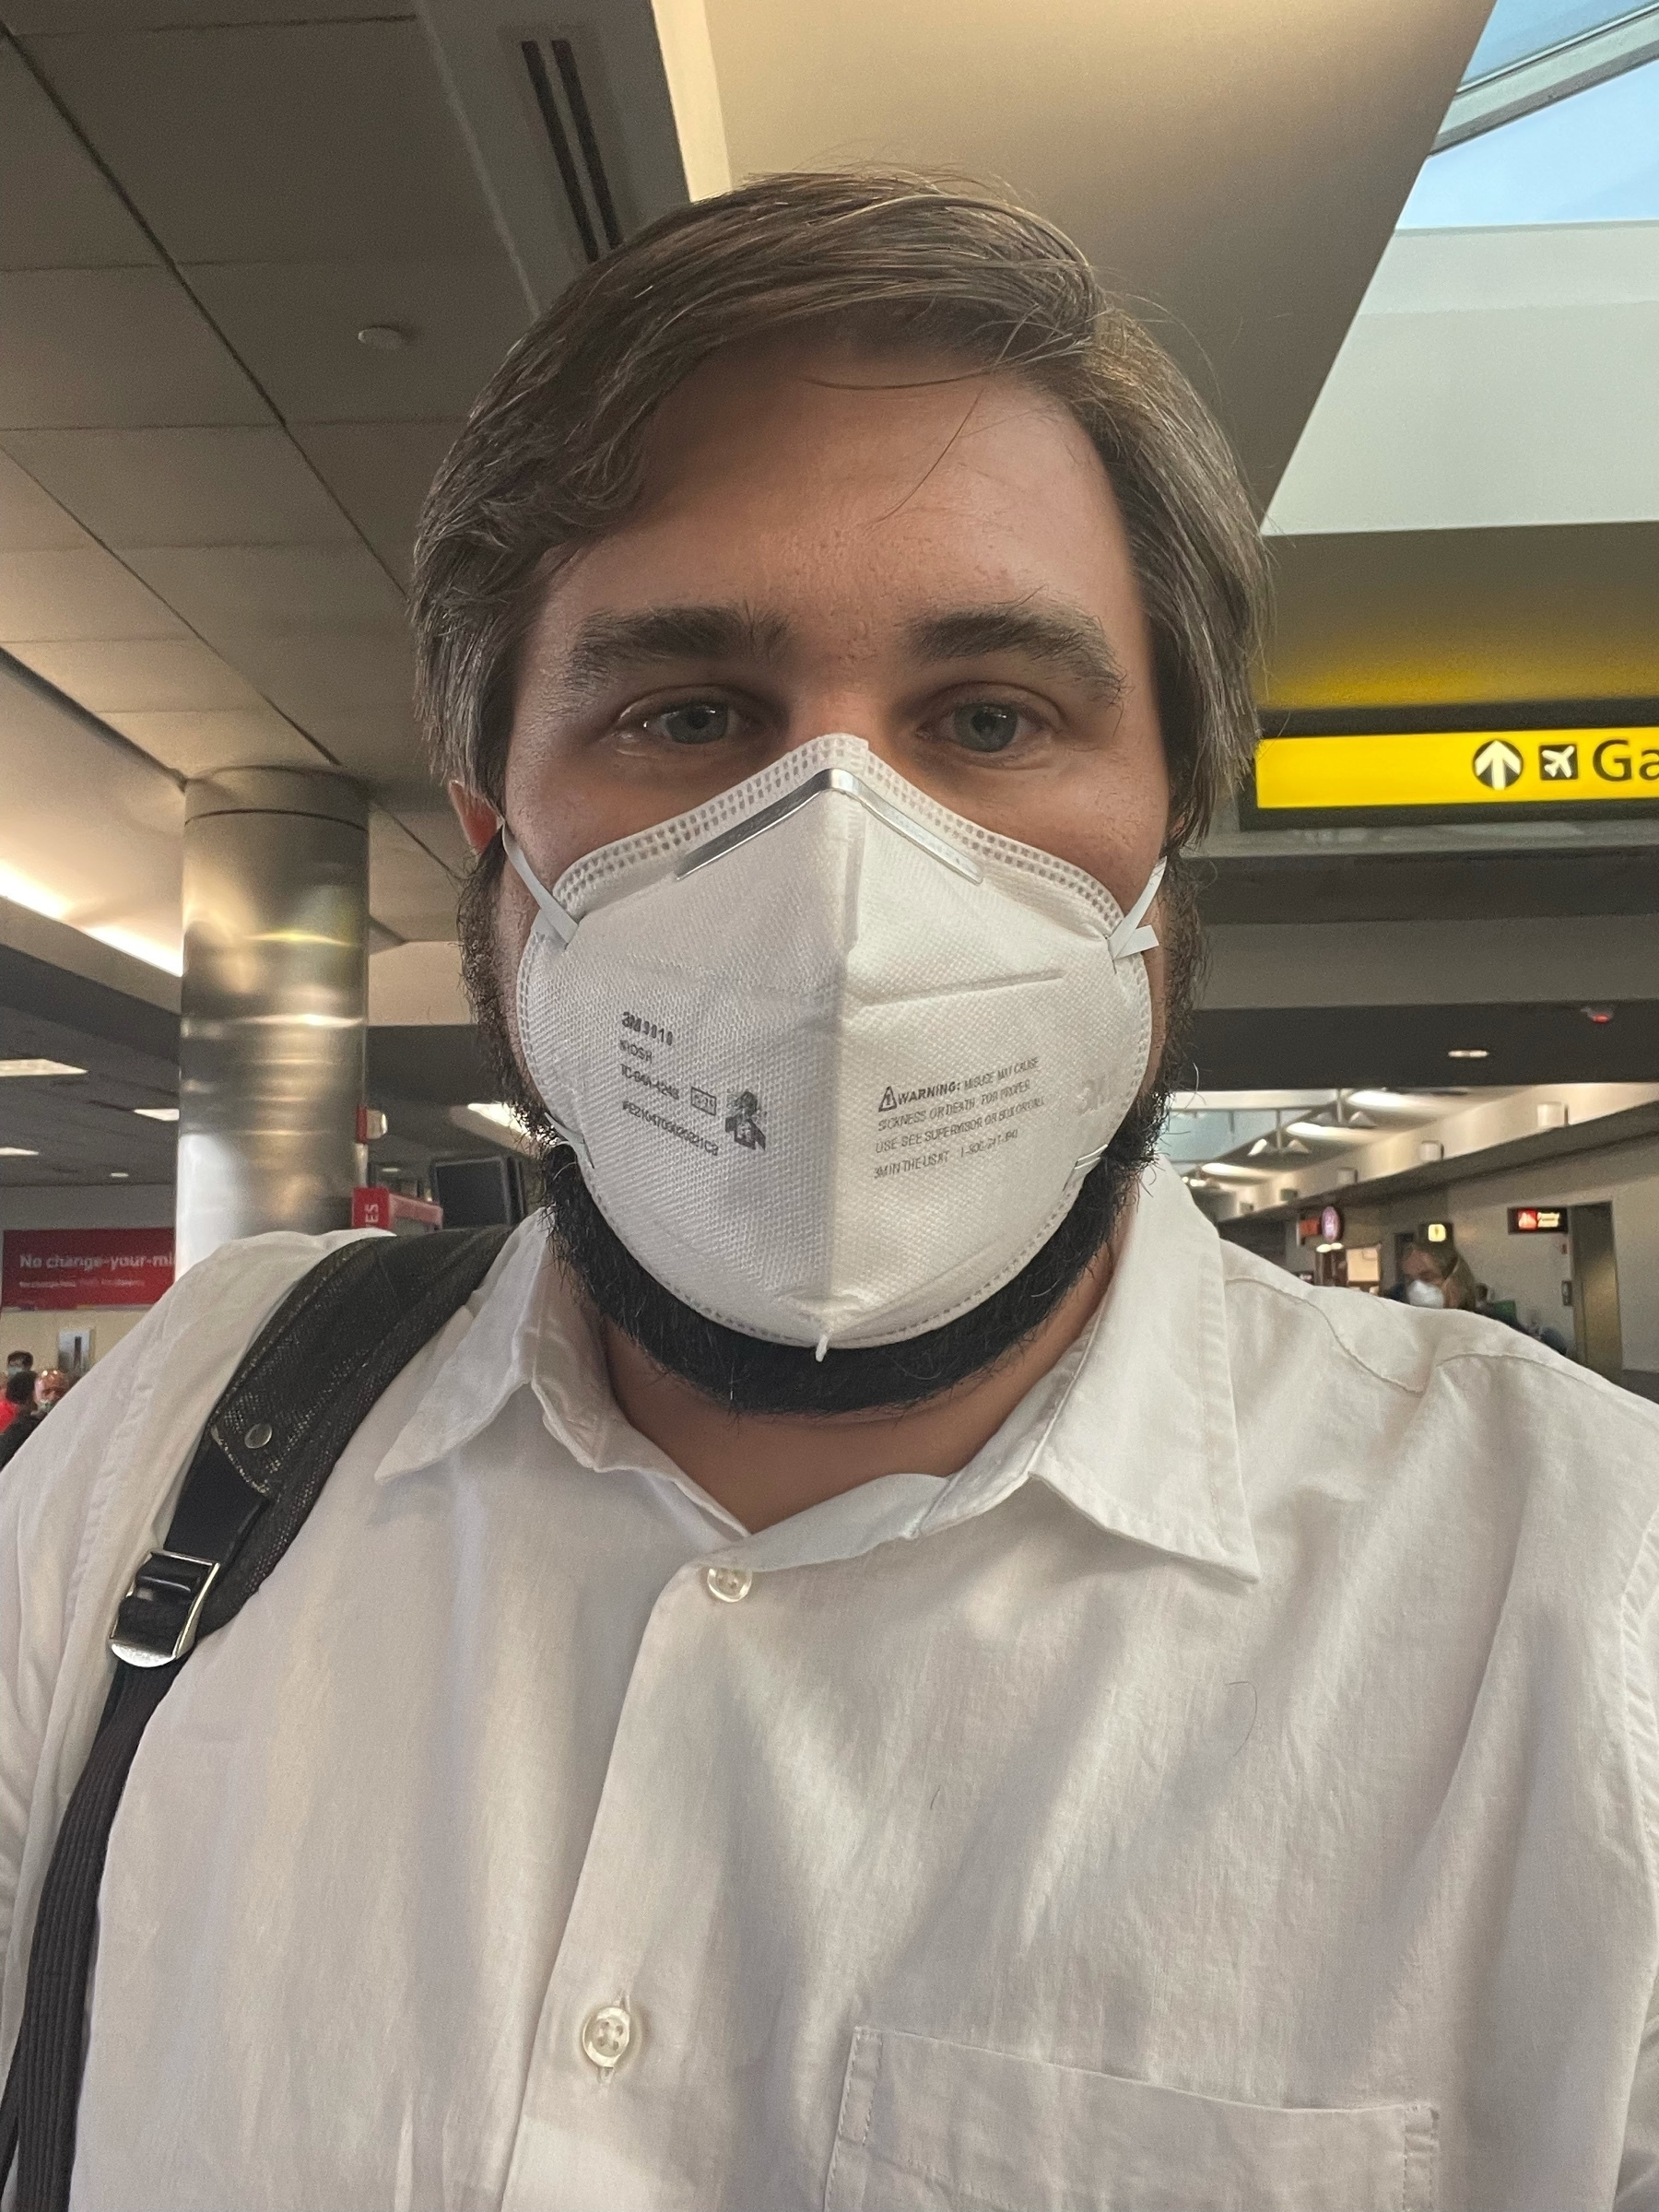 Selfie with an N95 mask and white shirt on at BWI.